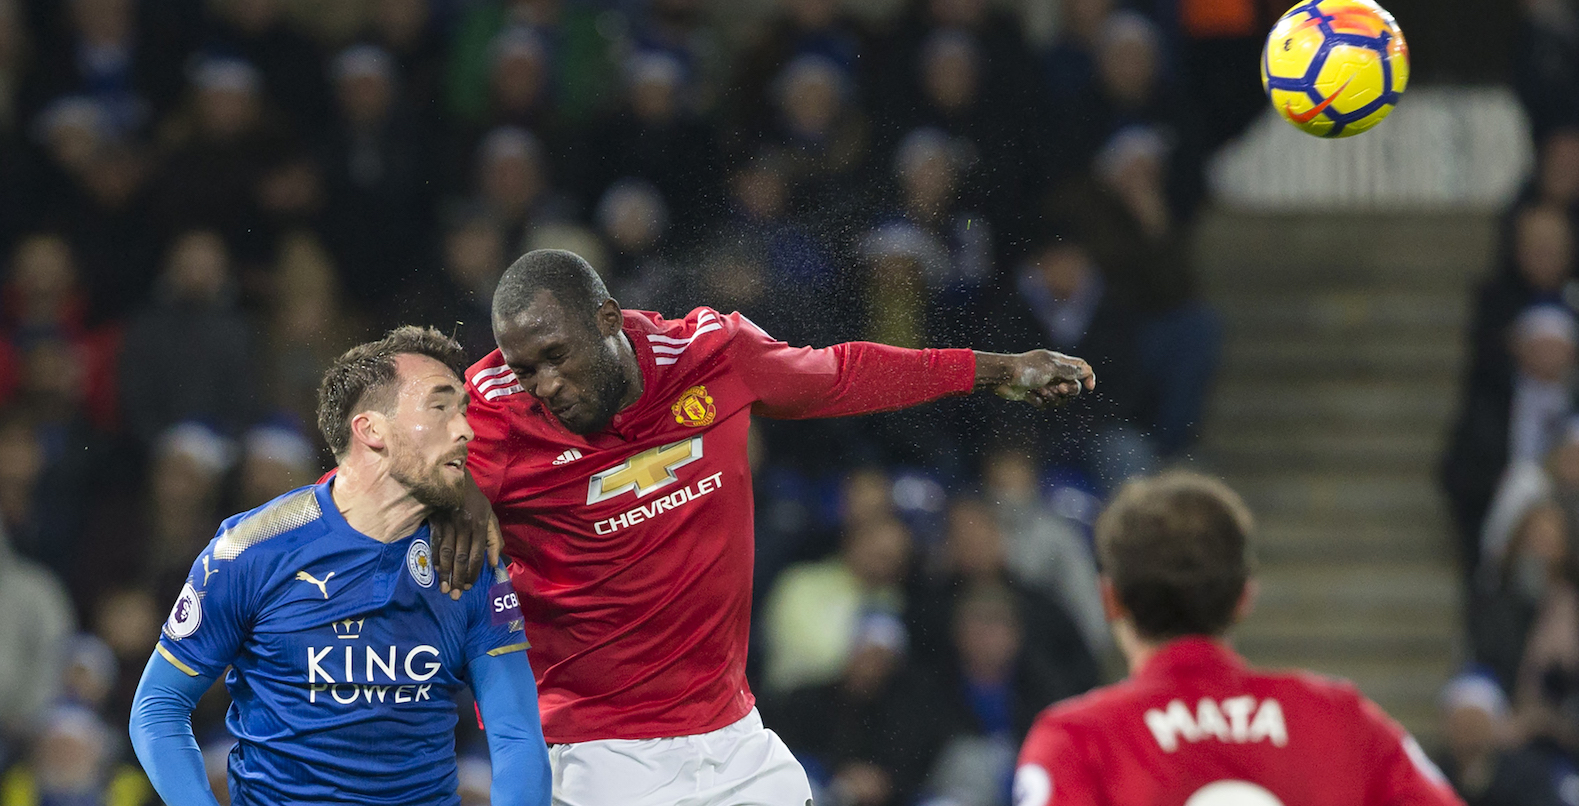 Headstrong Romelu Lukaku rises above mentally weak Manchester United attack at Leicester City